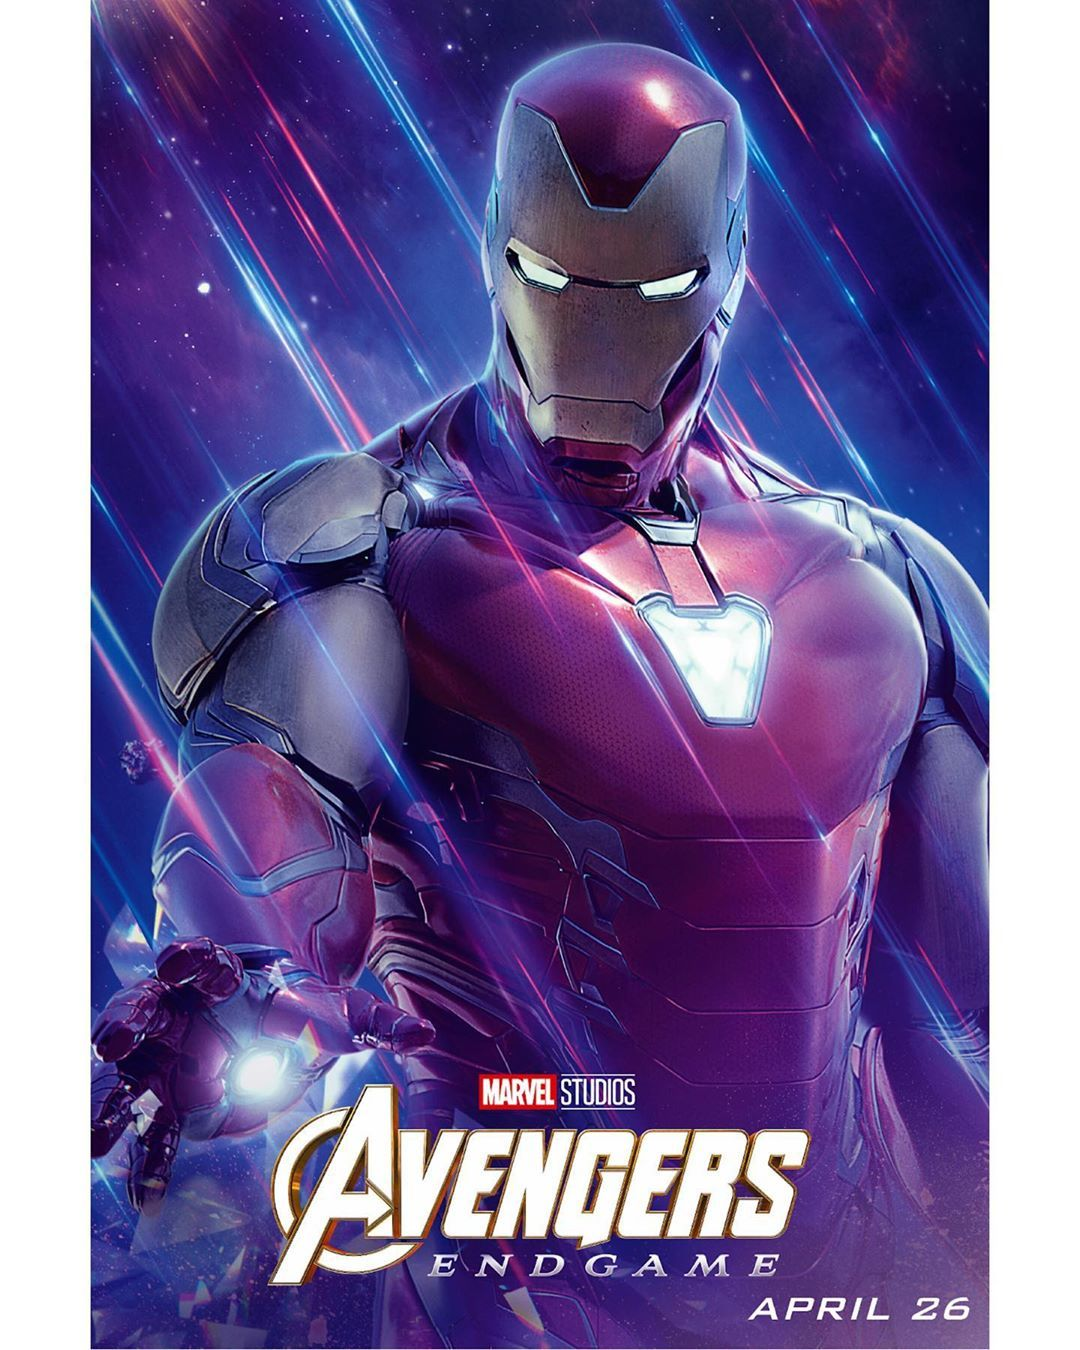 Pictame Webstagram Instagram Post By Marvelpulse Official Avengers Endgame Hd Posters With Iron Man Iron Man Poster Iron Man Wallpaper Iron Man Art Full hd avengers endgame iron man